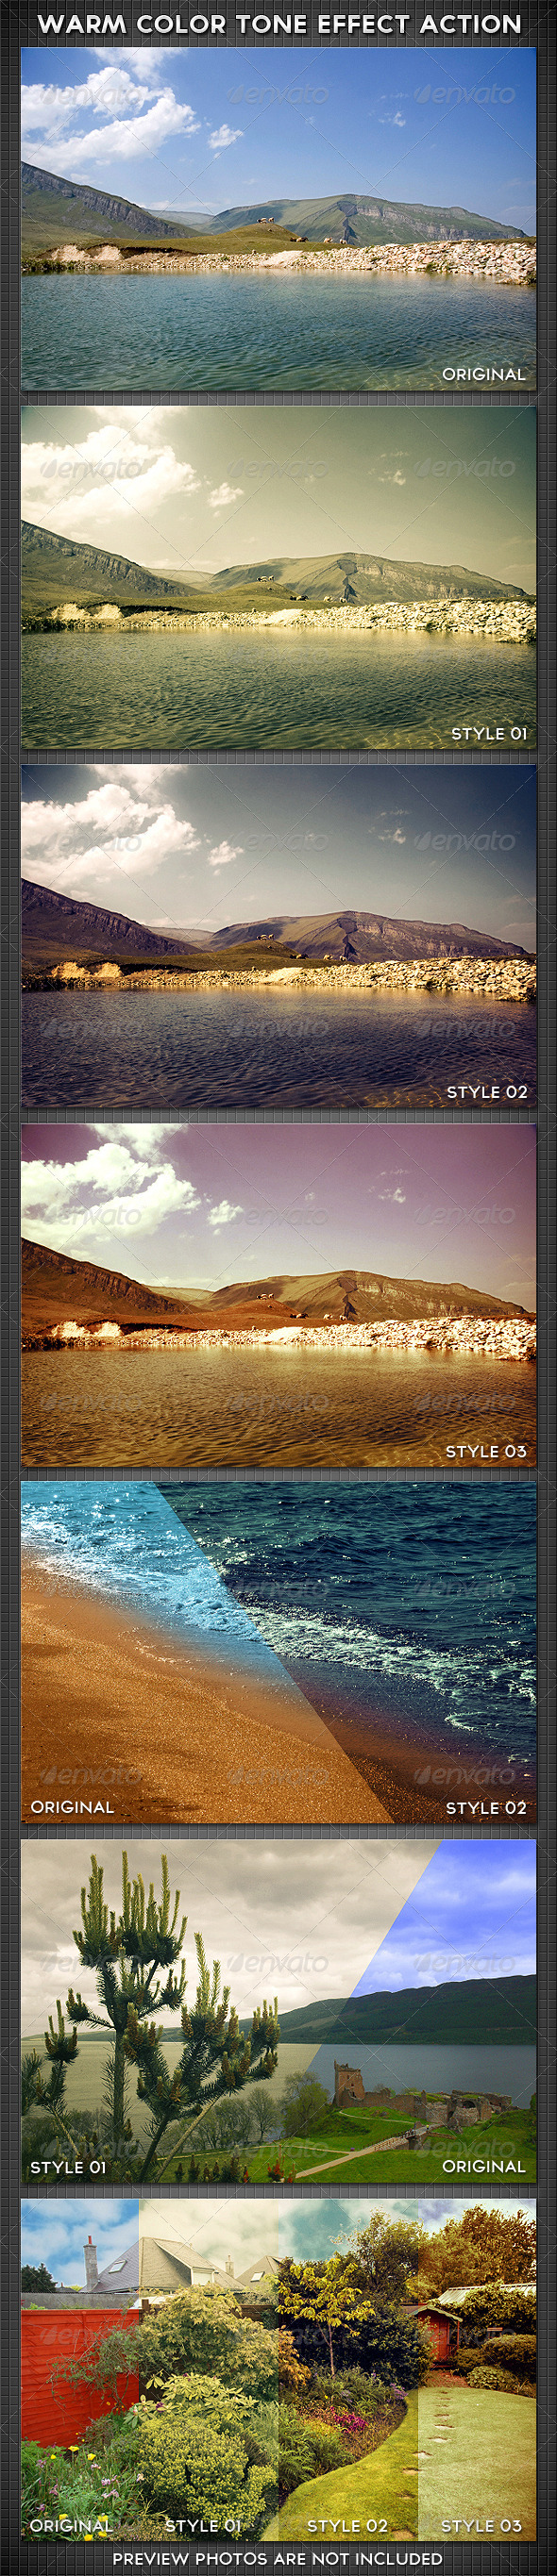 Warm Color Tone Effect Action - Photo Effects Actions